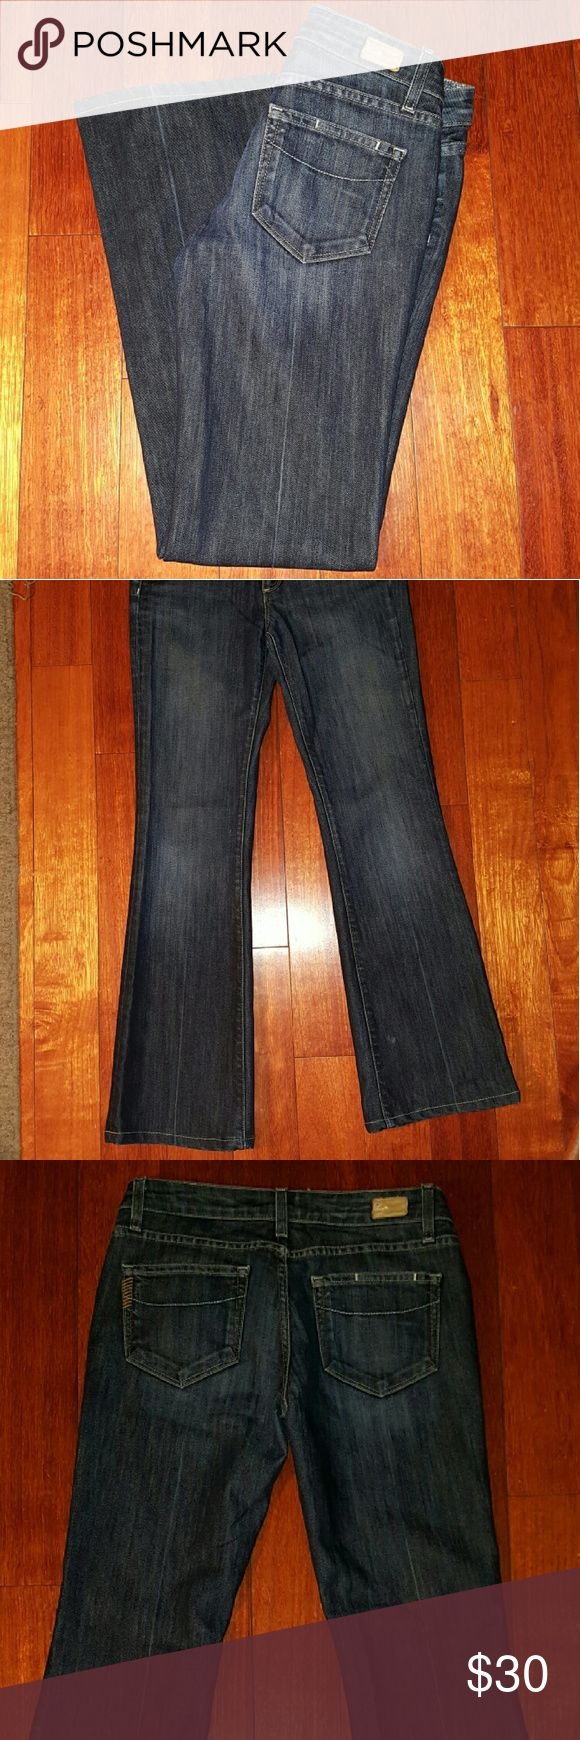 Paige premium denim jeans Paige Laurel Canyon low-rise boot cut jeans.  Great condition except for the faded crease line done center of leg.  Shown in photos.  Lots of life left.  Beautiful worn look.  Inseam 30 60% cotton/40% polyester Paige Jeans Jeans Boot Cut